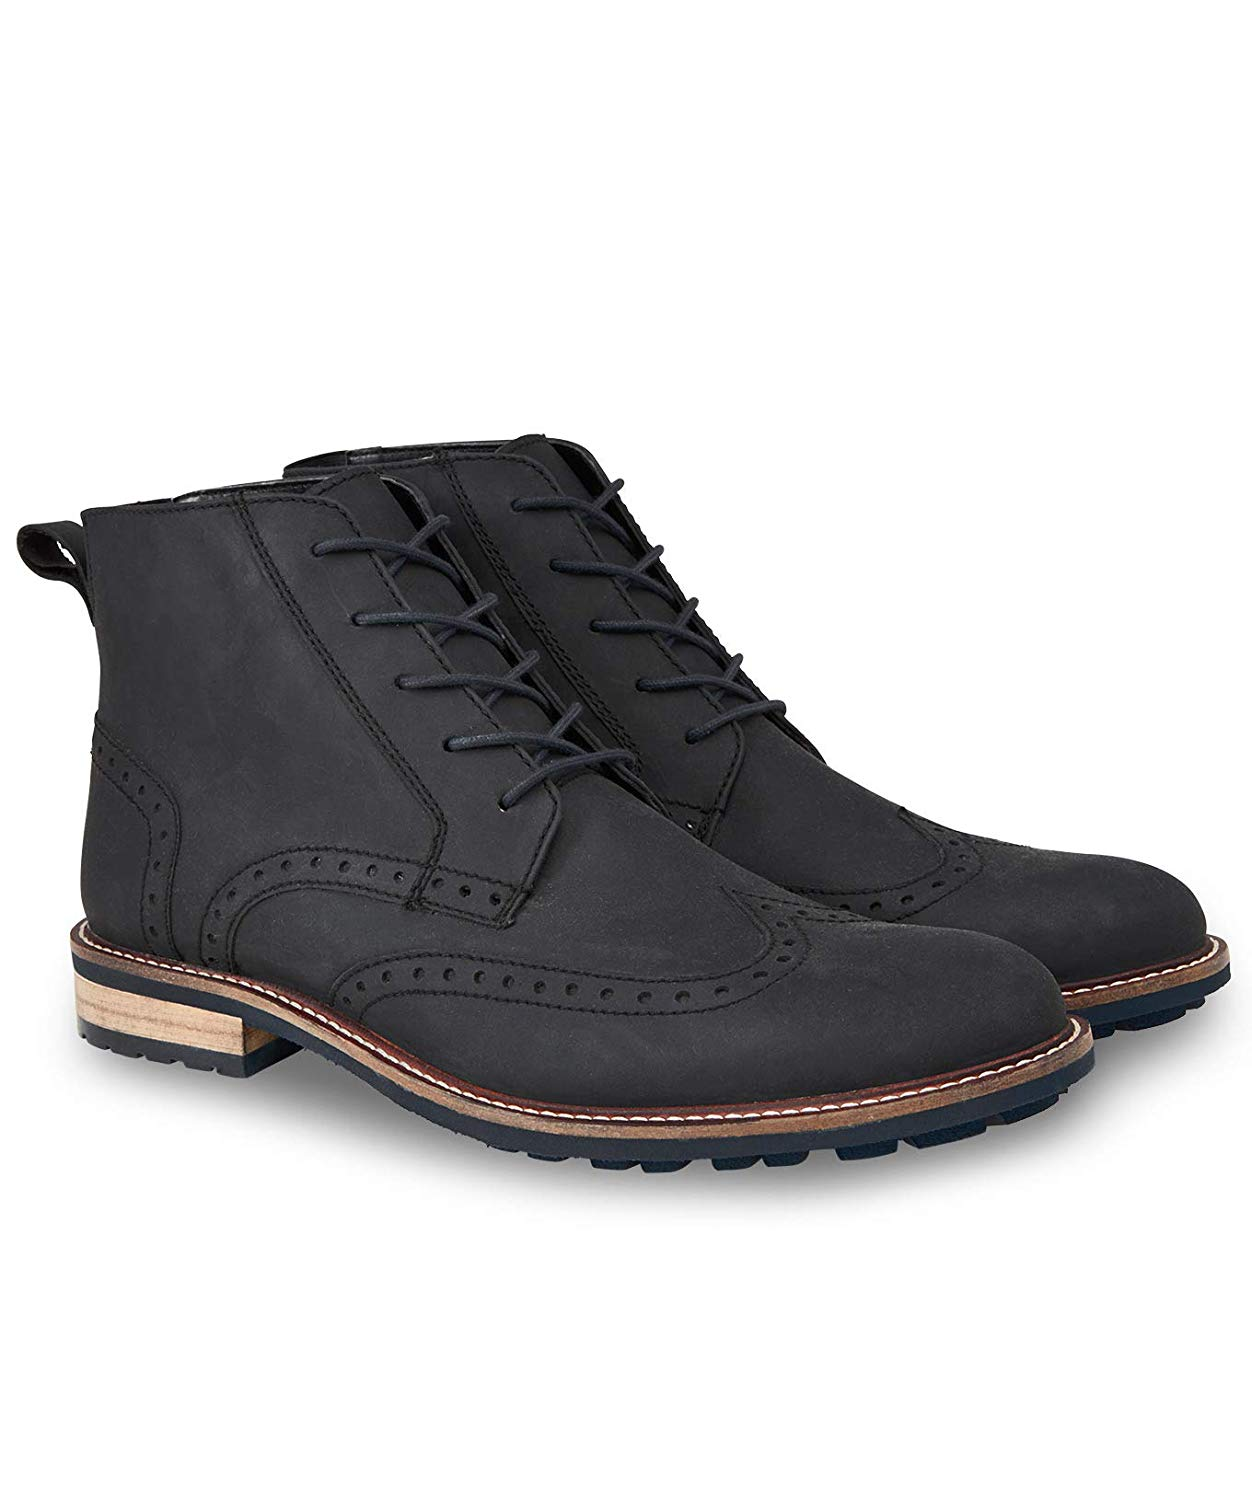 8a625c7401e7e7 Get Quotations · Joe Browns Mens Waxed Leather Brogue Boots